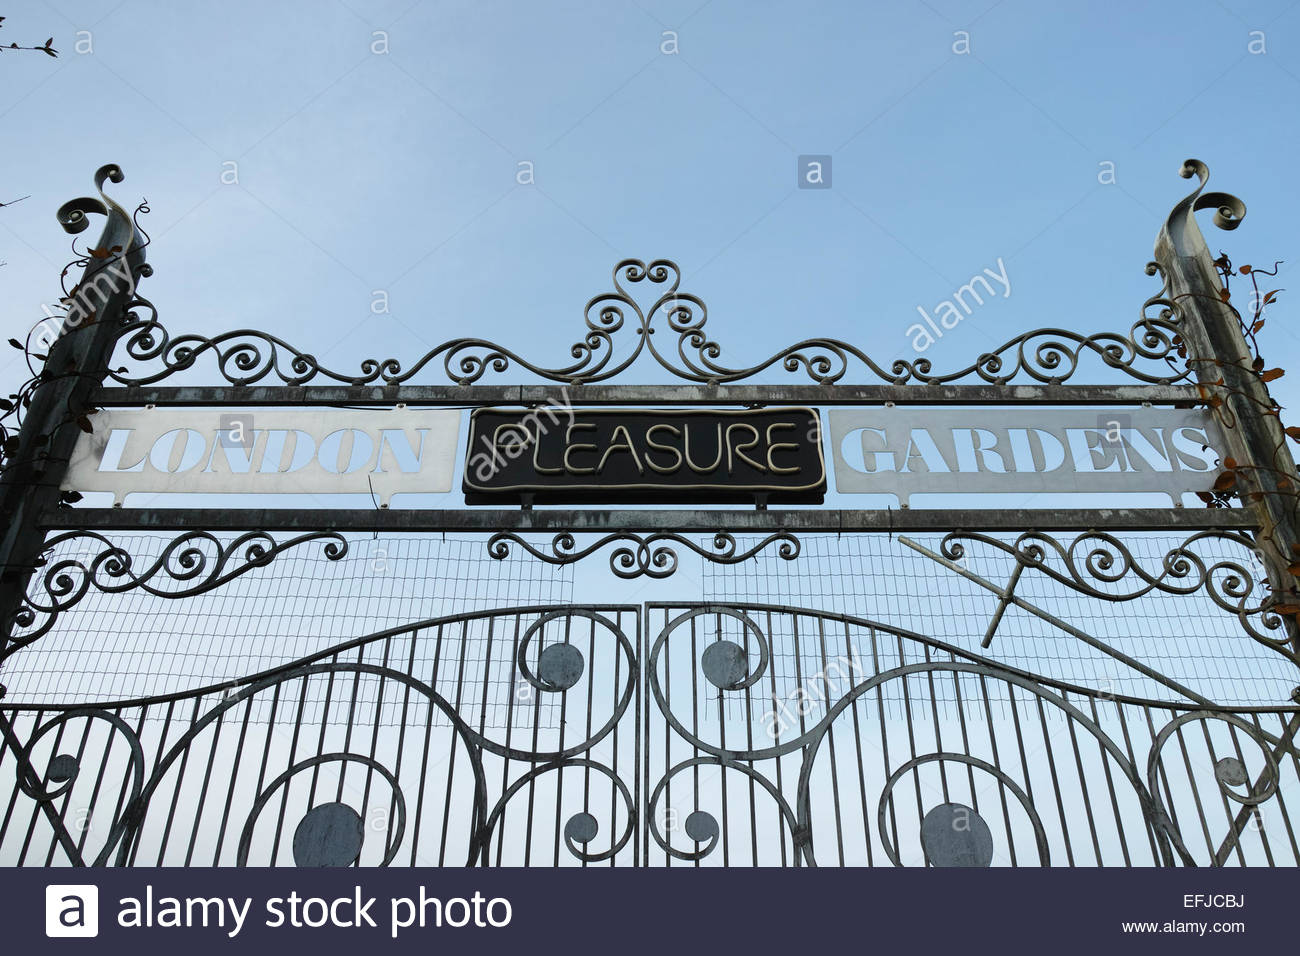 Entrance Gate To The London Pleasure Gardens In Silvertown Which Closed For  Business Shortly After Opening